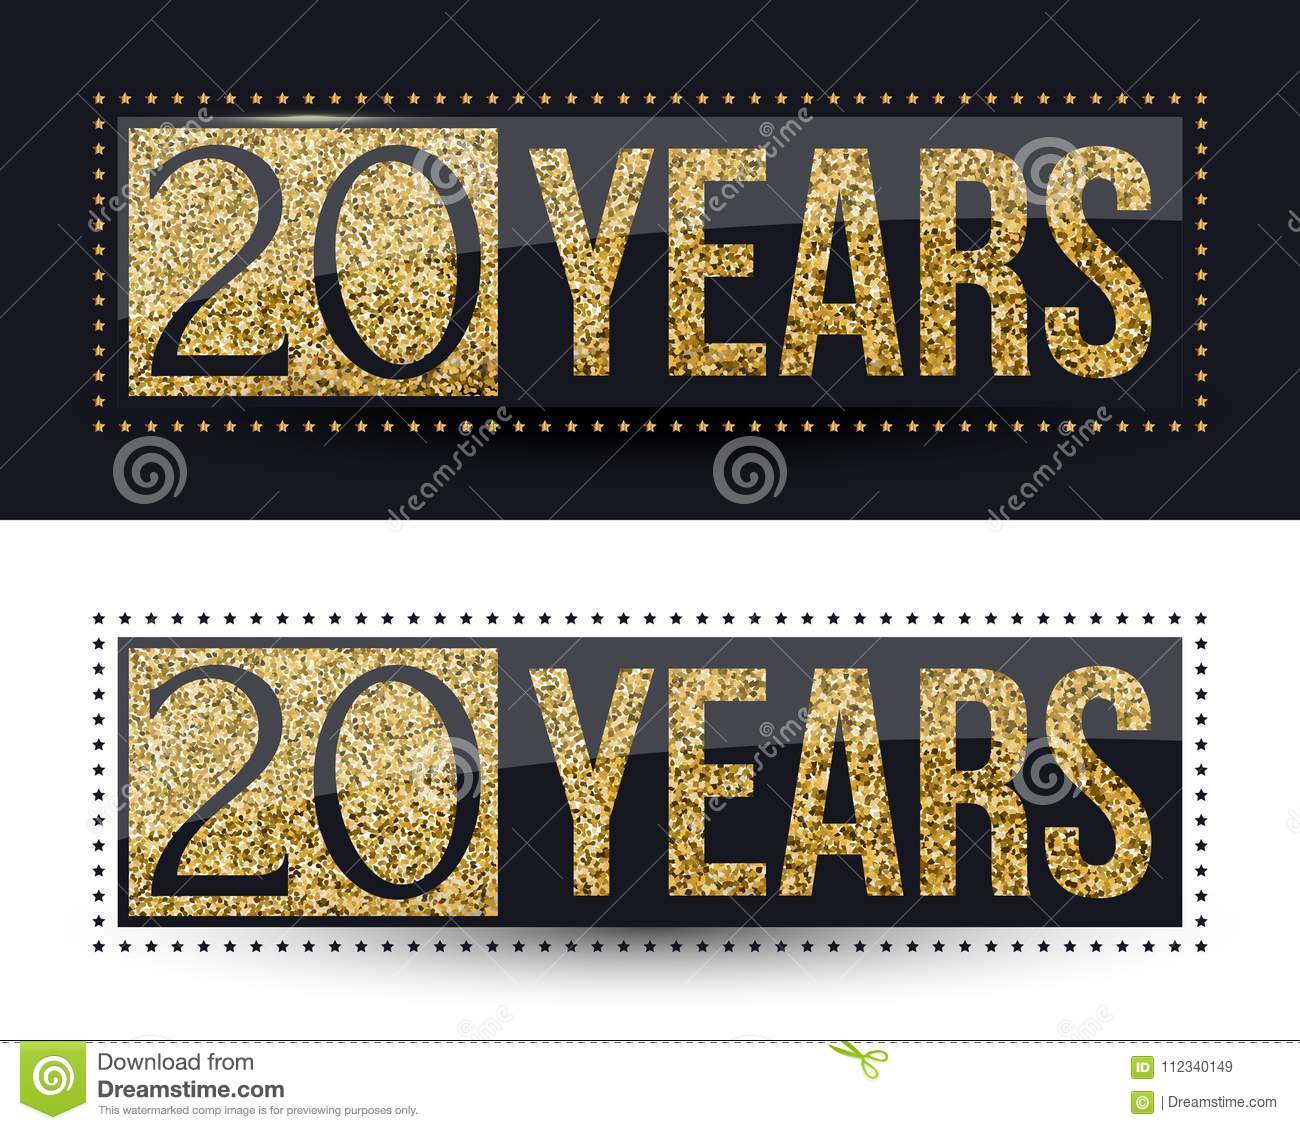 20 years anniversary gold banner on dark and white backgrounds.